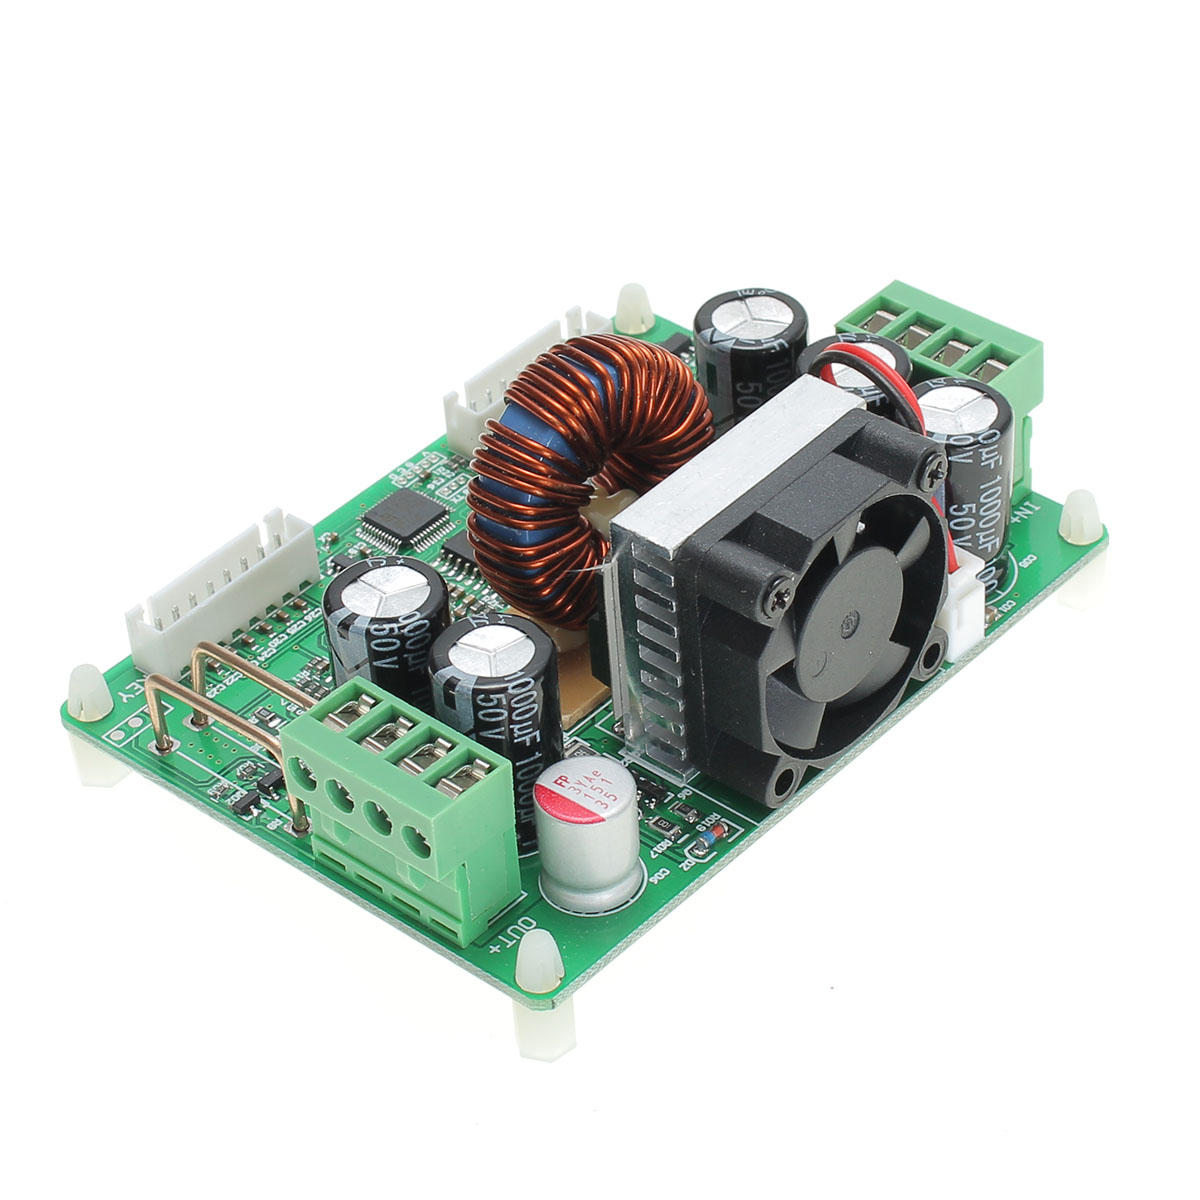 20pcs LM7809 DC/AC 12-24V to 9V DC Output Three Terminal Voltage Regulator Power Supply Step Down Module 1.2A - 5